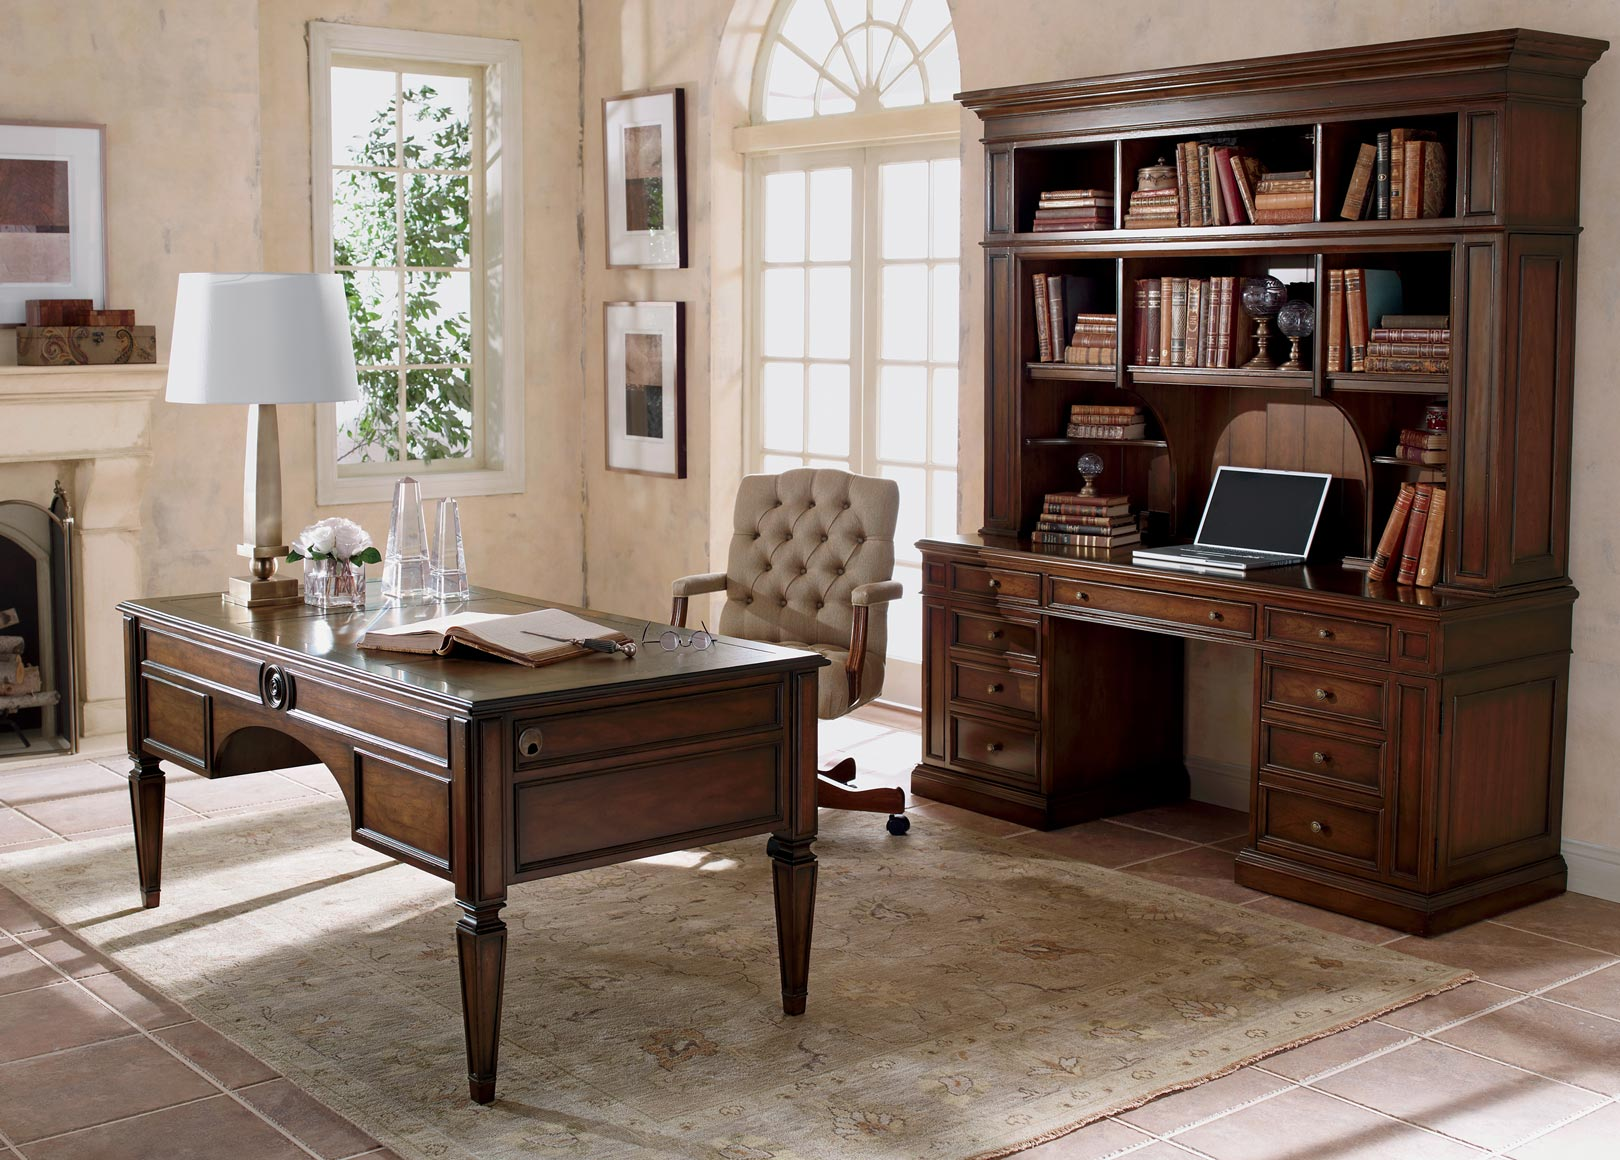 Incroyable Working Class Home Office | Ethan Allen | SiteGenesis | 101.1.2    Controllers